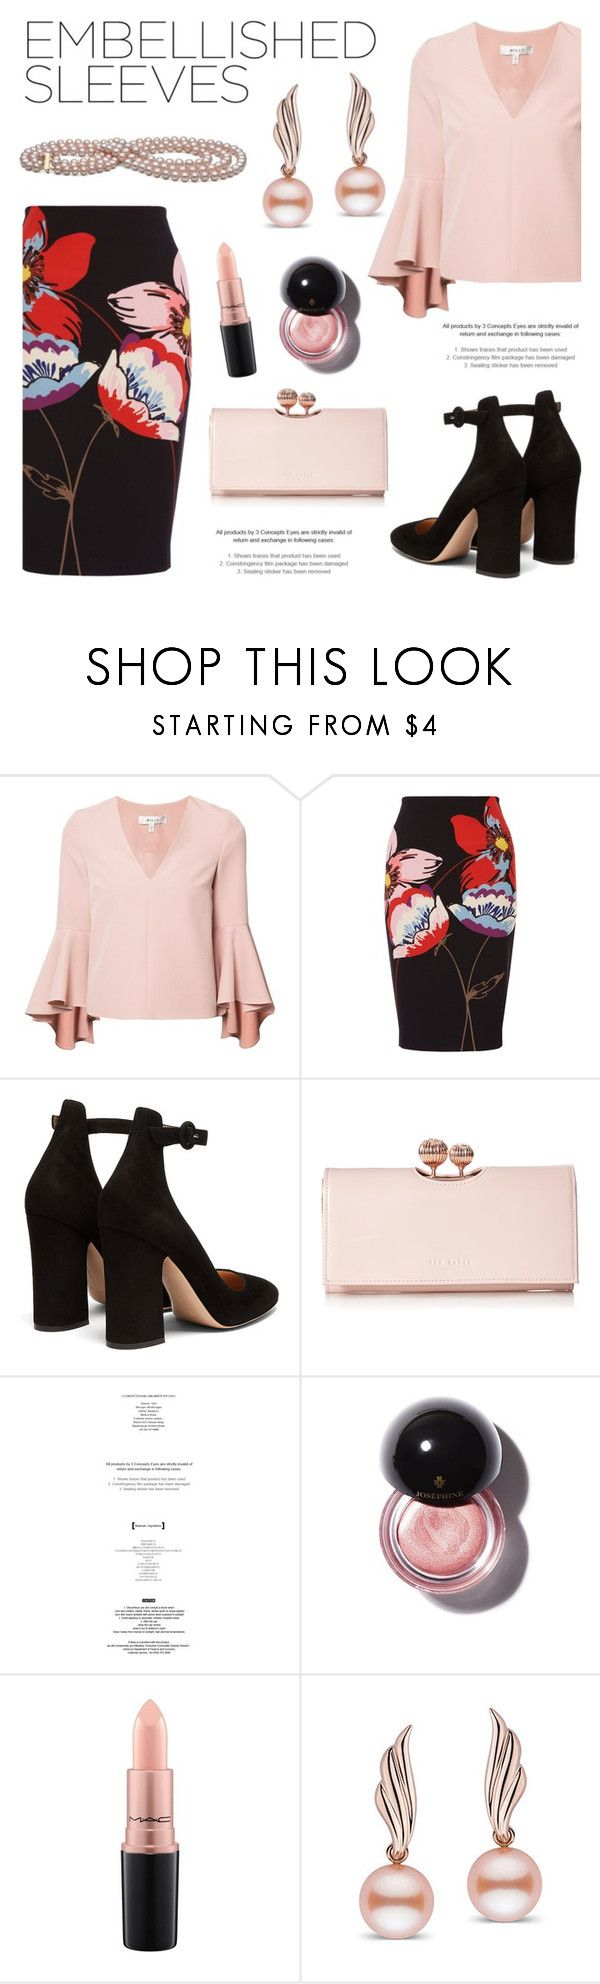 """""""Make a Statement: Embellished Sleeves"""" by pearlparadise ❤ liked on Polyvore featuring Milly, Fenn Wright Manson, Gianvito Rossi, Ted Baker, StyleNanda, MAC Cosmetics, contestentry, pearljewelry, pearlparadise and embellishedsleeves"""